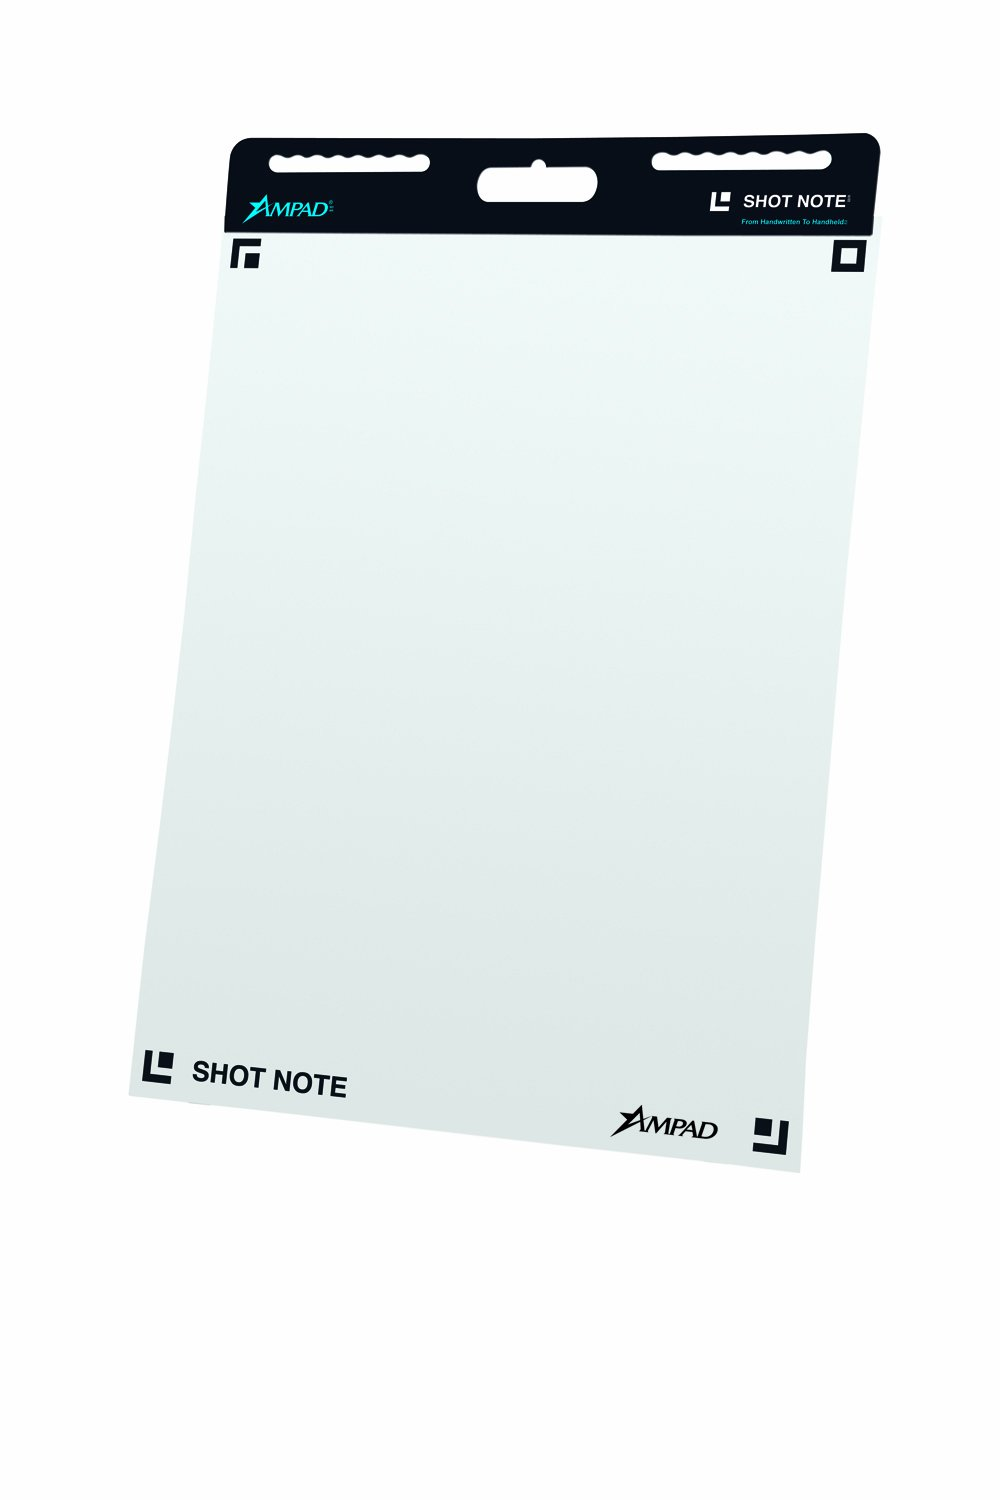 Ampad ShotNote Self Adhesive Easel Pad 23 1/4 x 31 Inches, Unruled, 25 Sheets Per Pad, 2 Pack (24-111) by Ampad